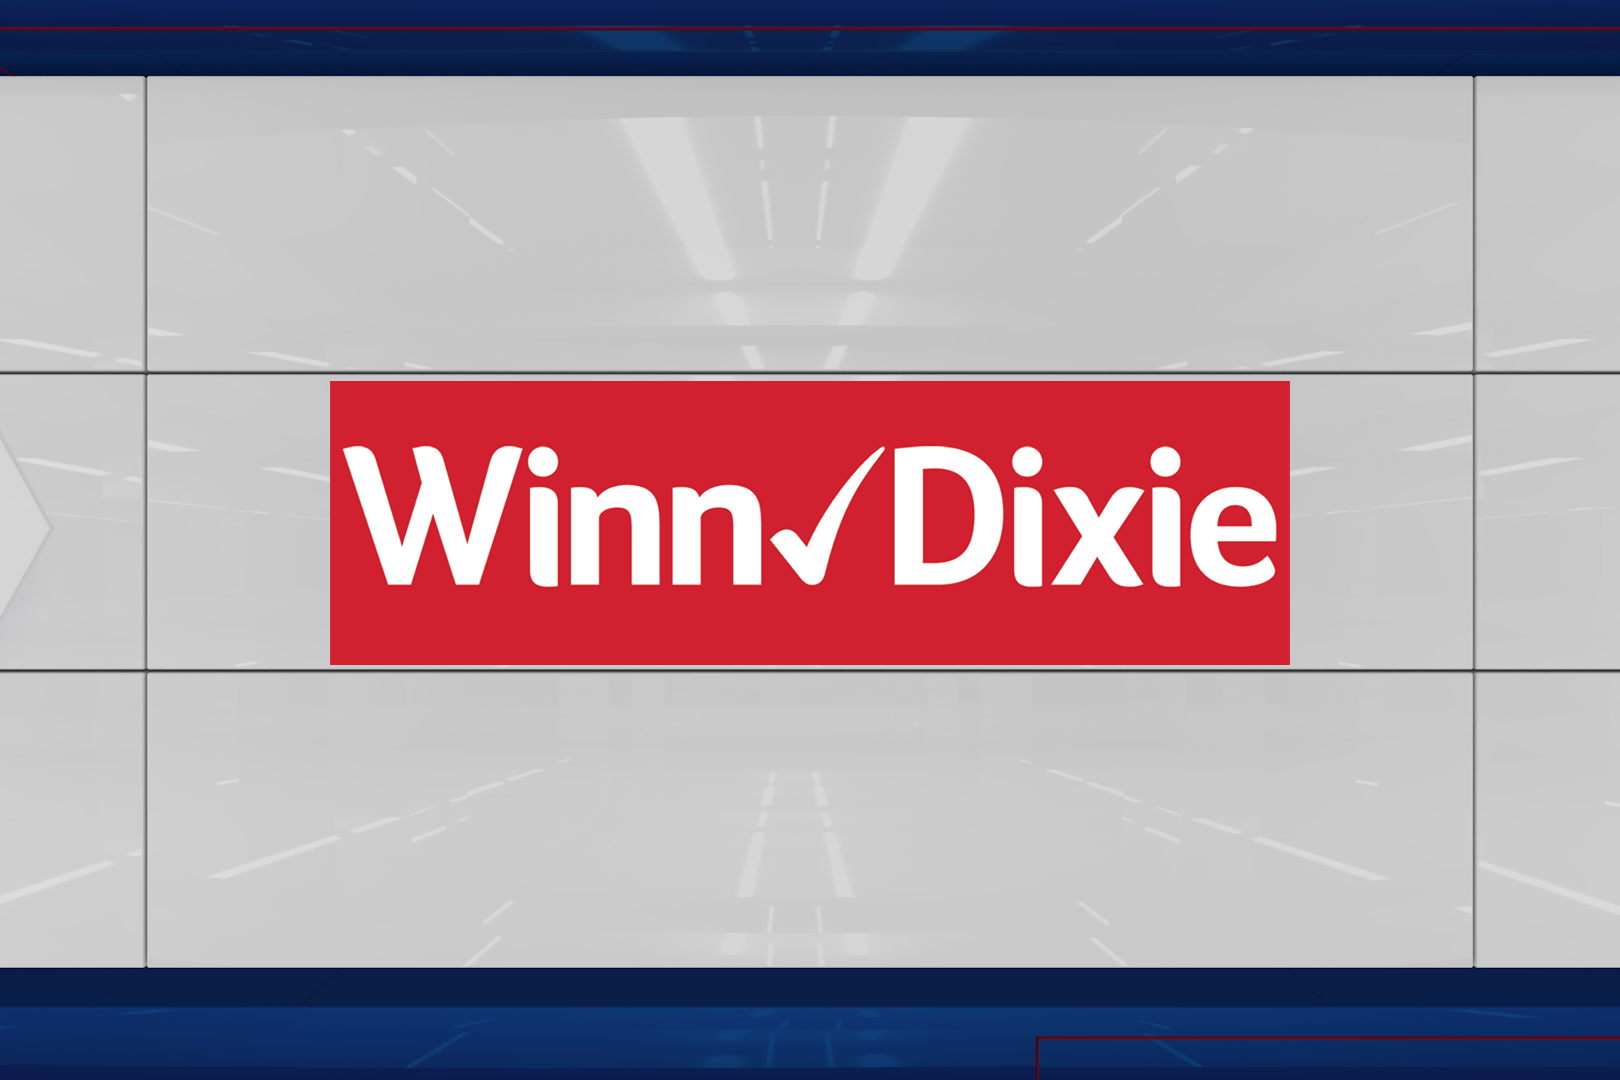 Parent company of Winn-Dixie, Harveys pre-filing for Chapter 11 bankruptcy